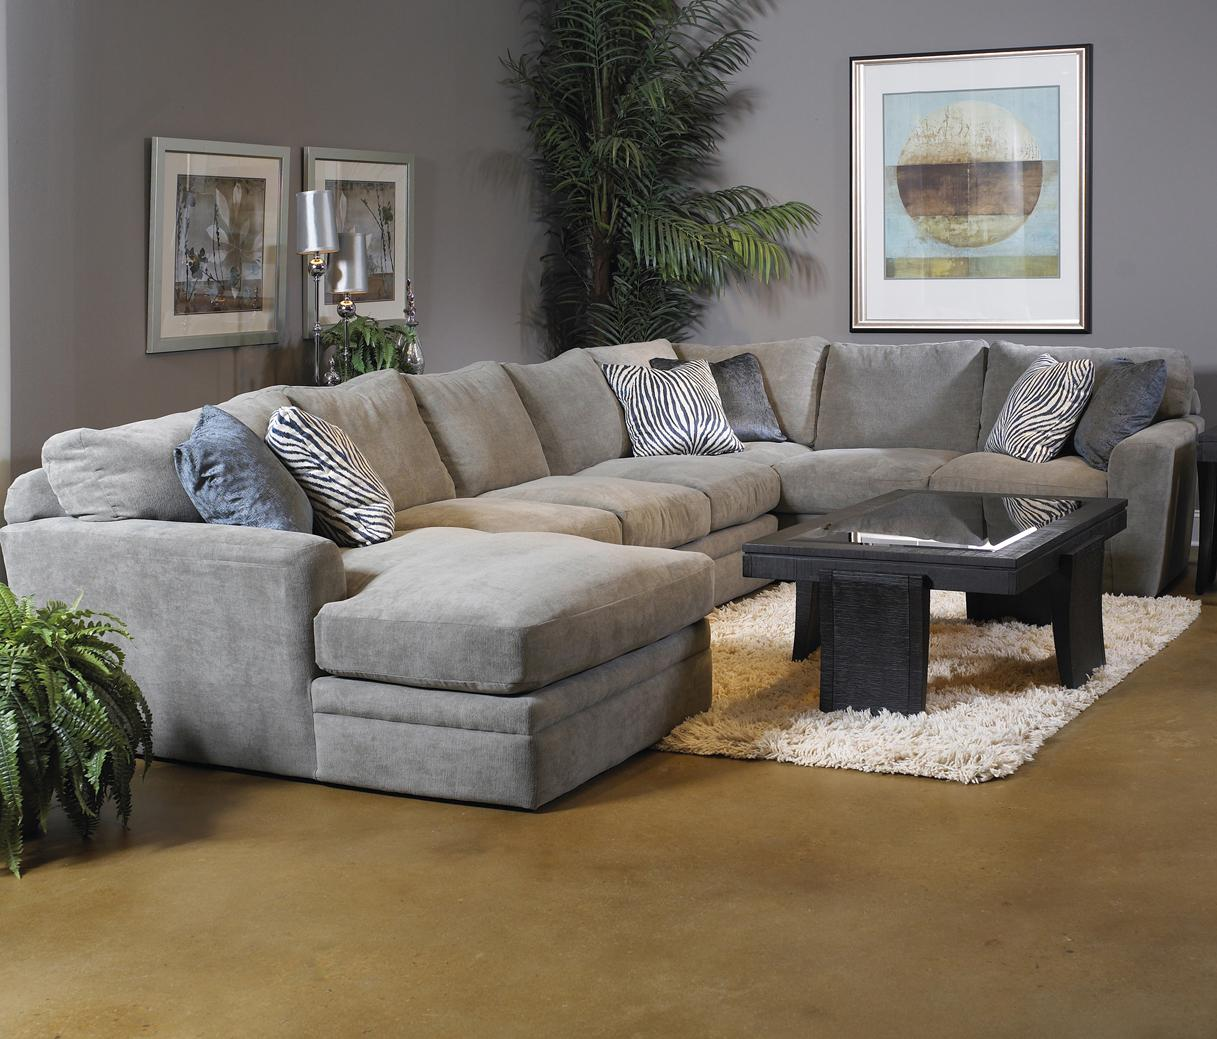 Fairmont Designs Palms 3-Piece Sofa Sectional